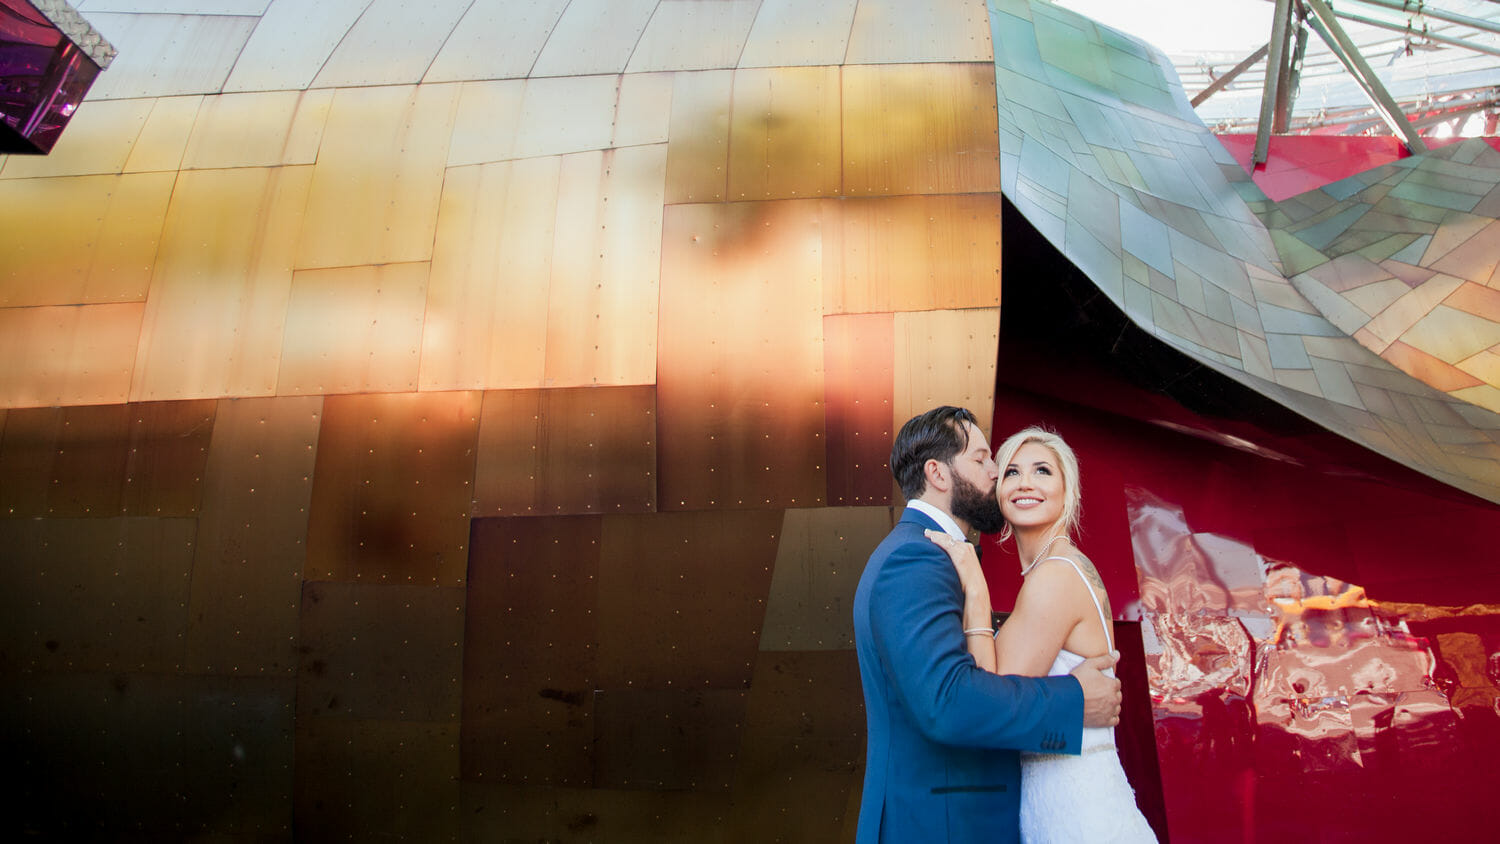 wedding-photographer-chihuly-garden-glass-seattle-lindsay-daniel-320_lndd1561